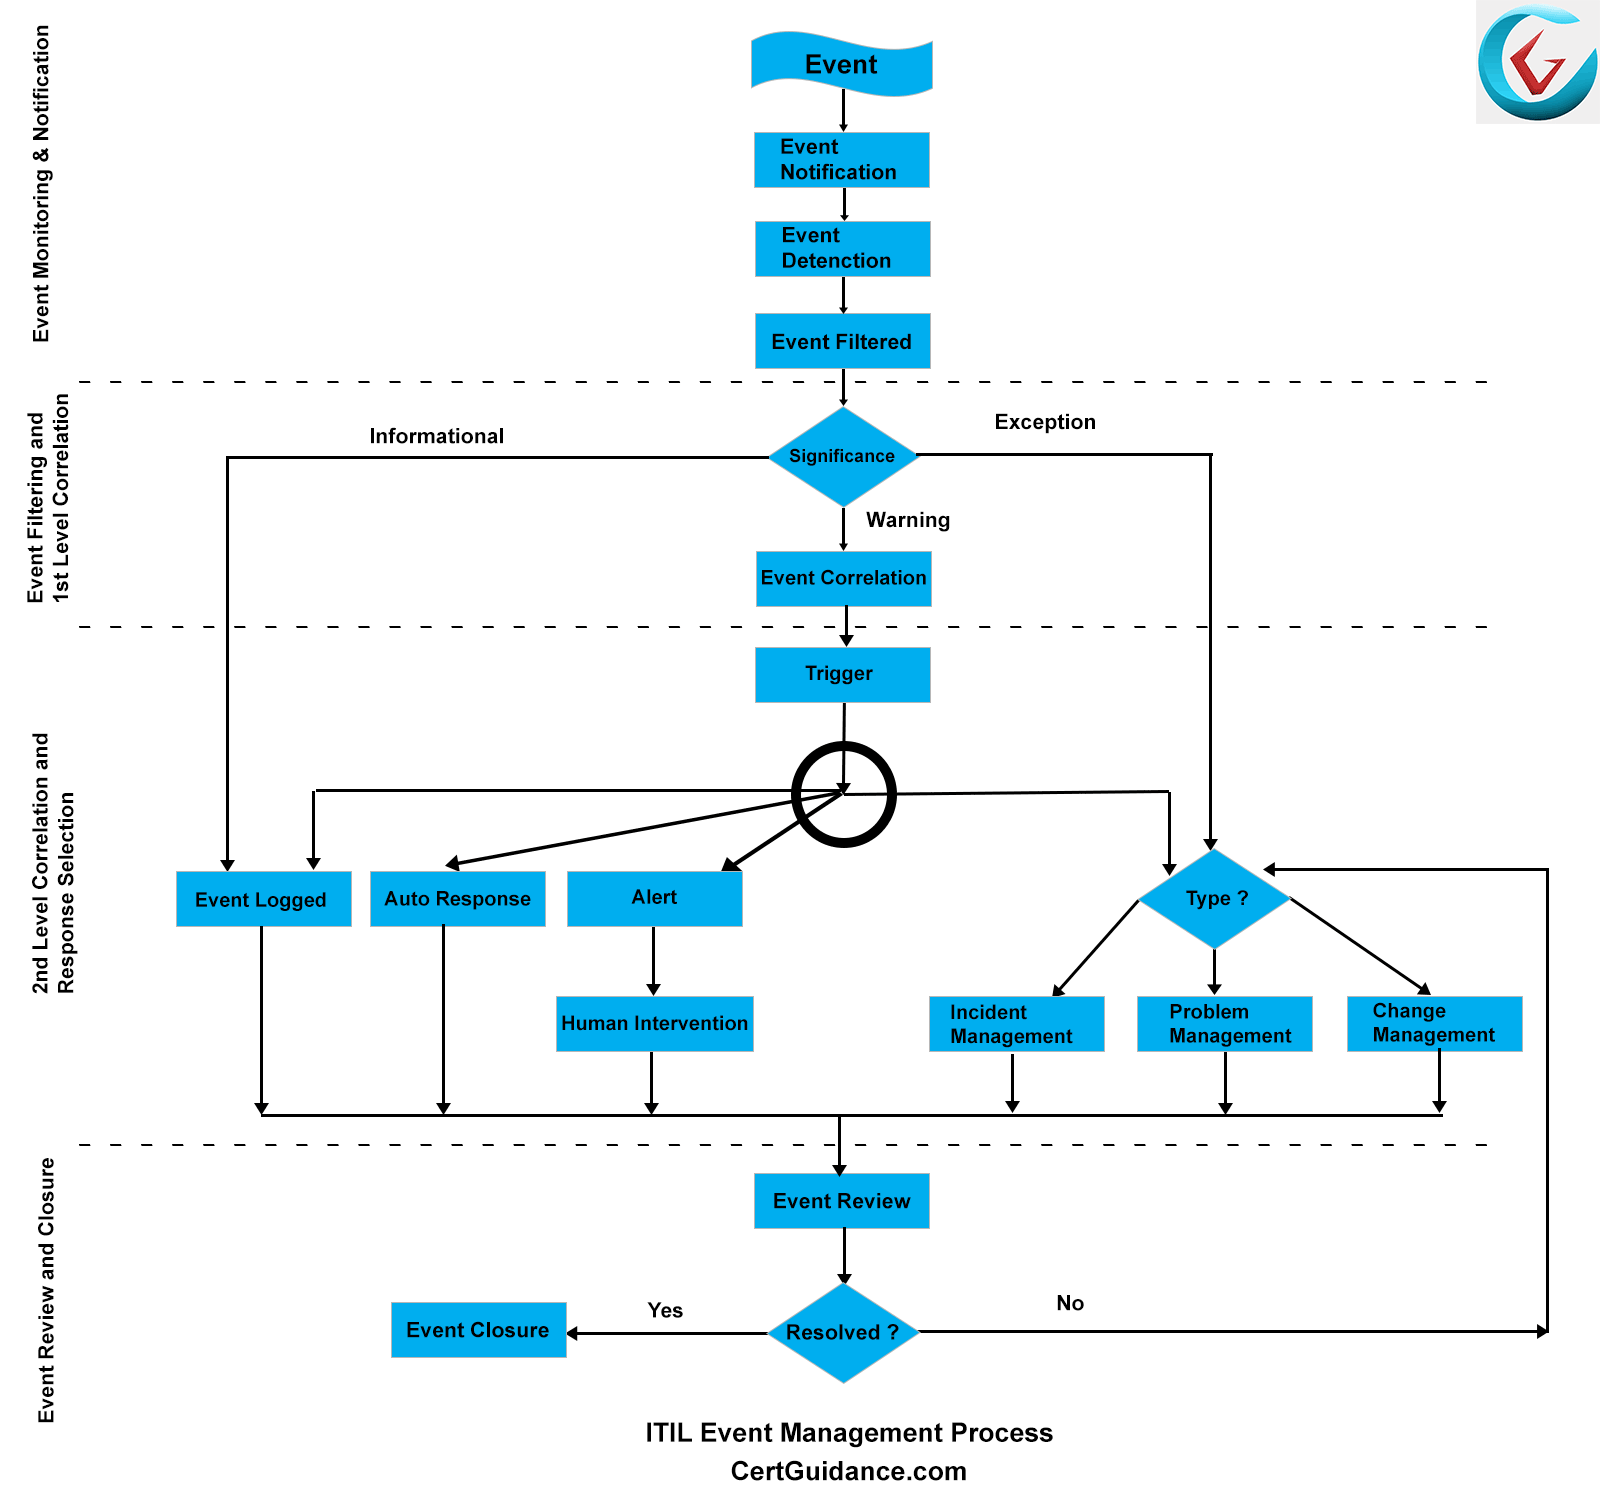 ITIL Event Management Process Flow and Activities